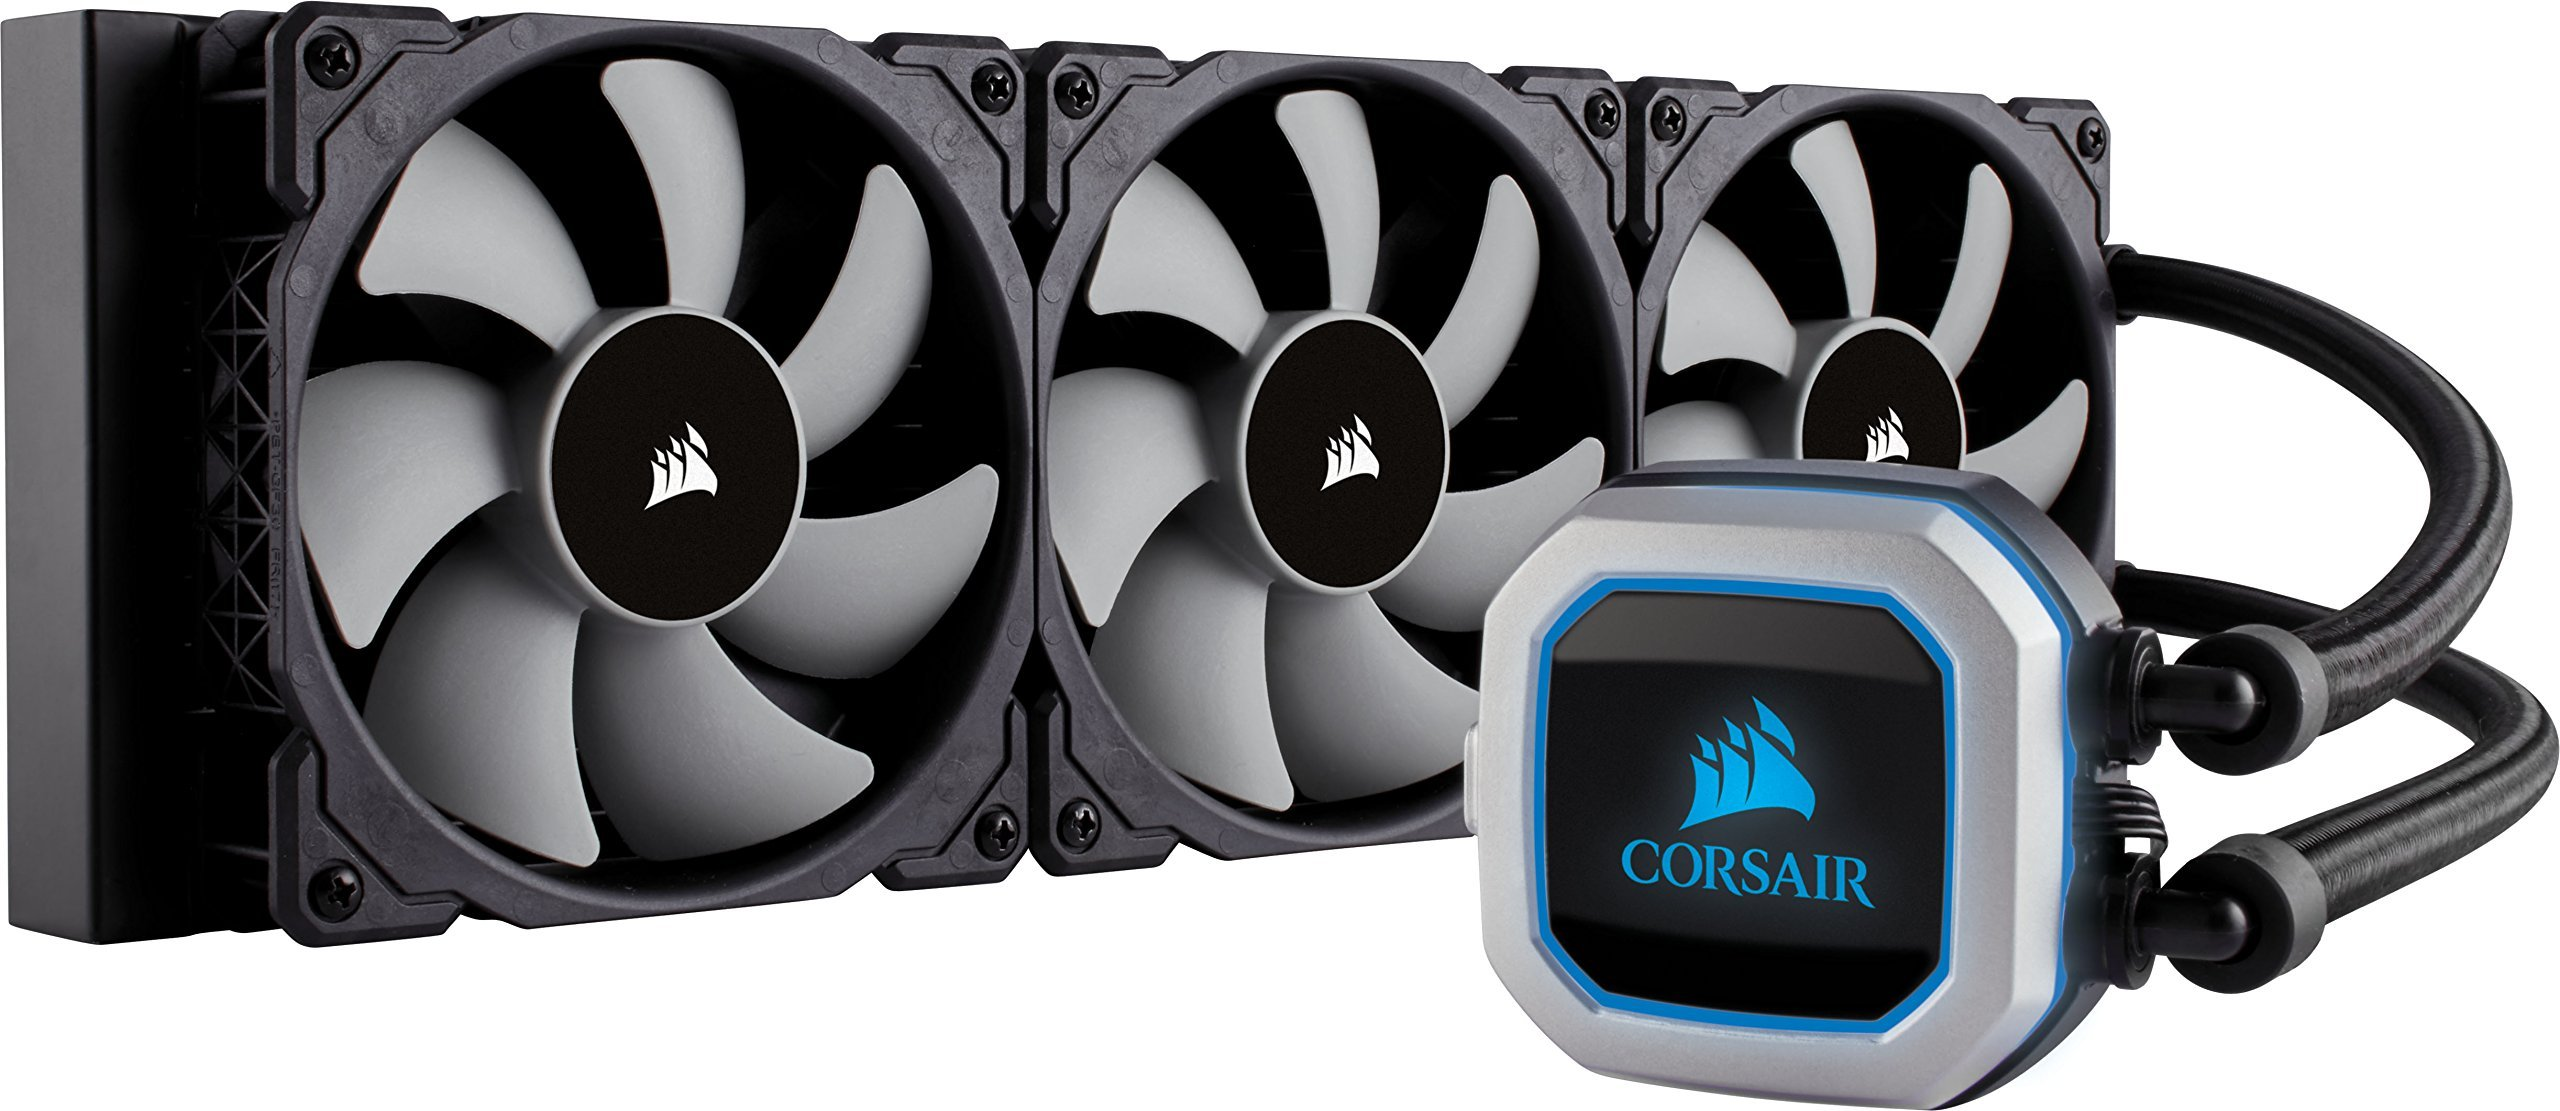 Corsair Hydro Series H150i PRO RGB 360mm Radiator Triple 120mm ML Series PWM Fans Advanced RGB Lighting Liquid CPU Cooler (CW-9060031-WW) by Corsair